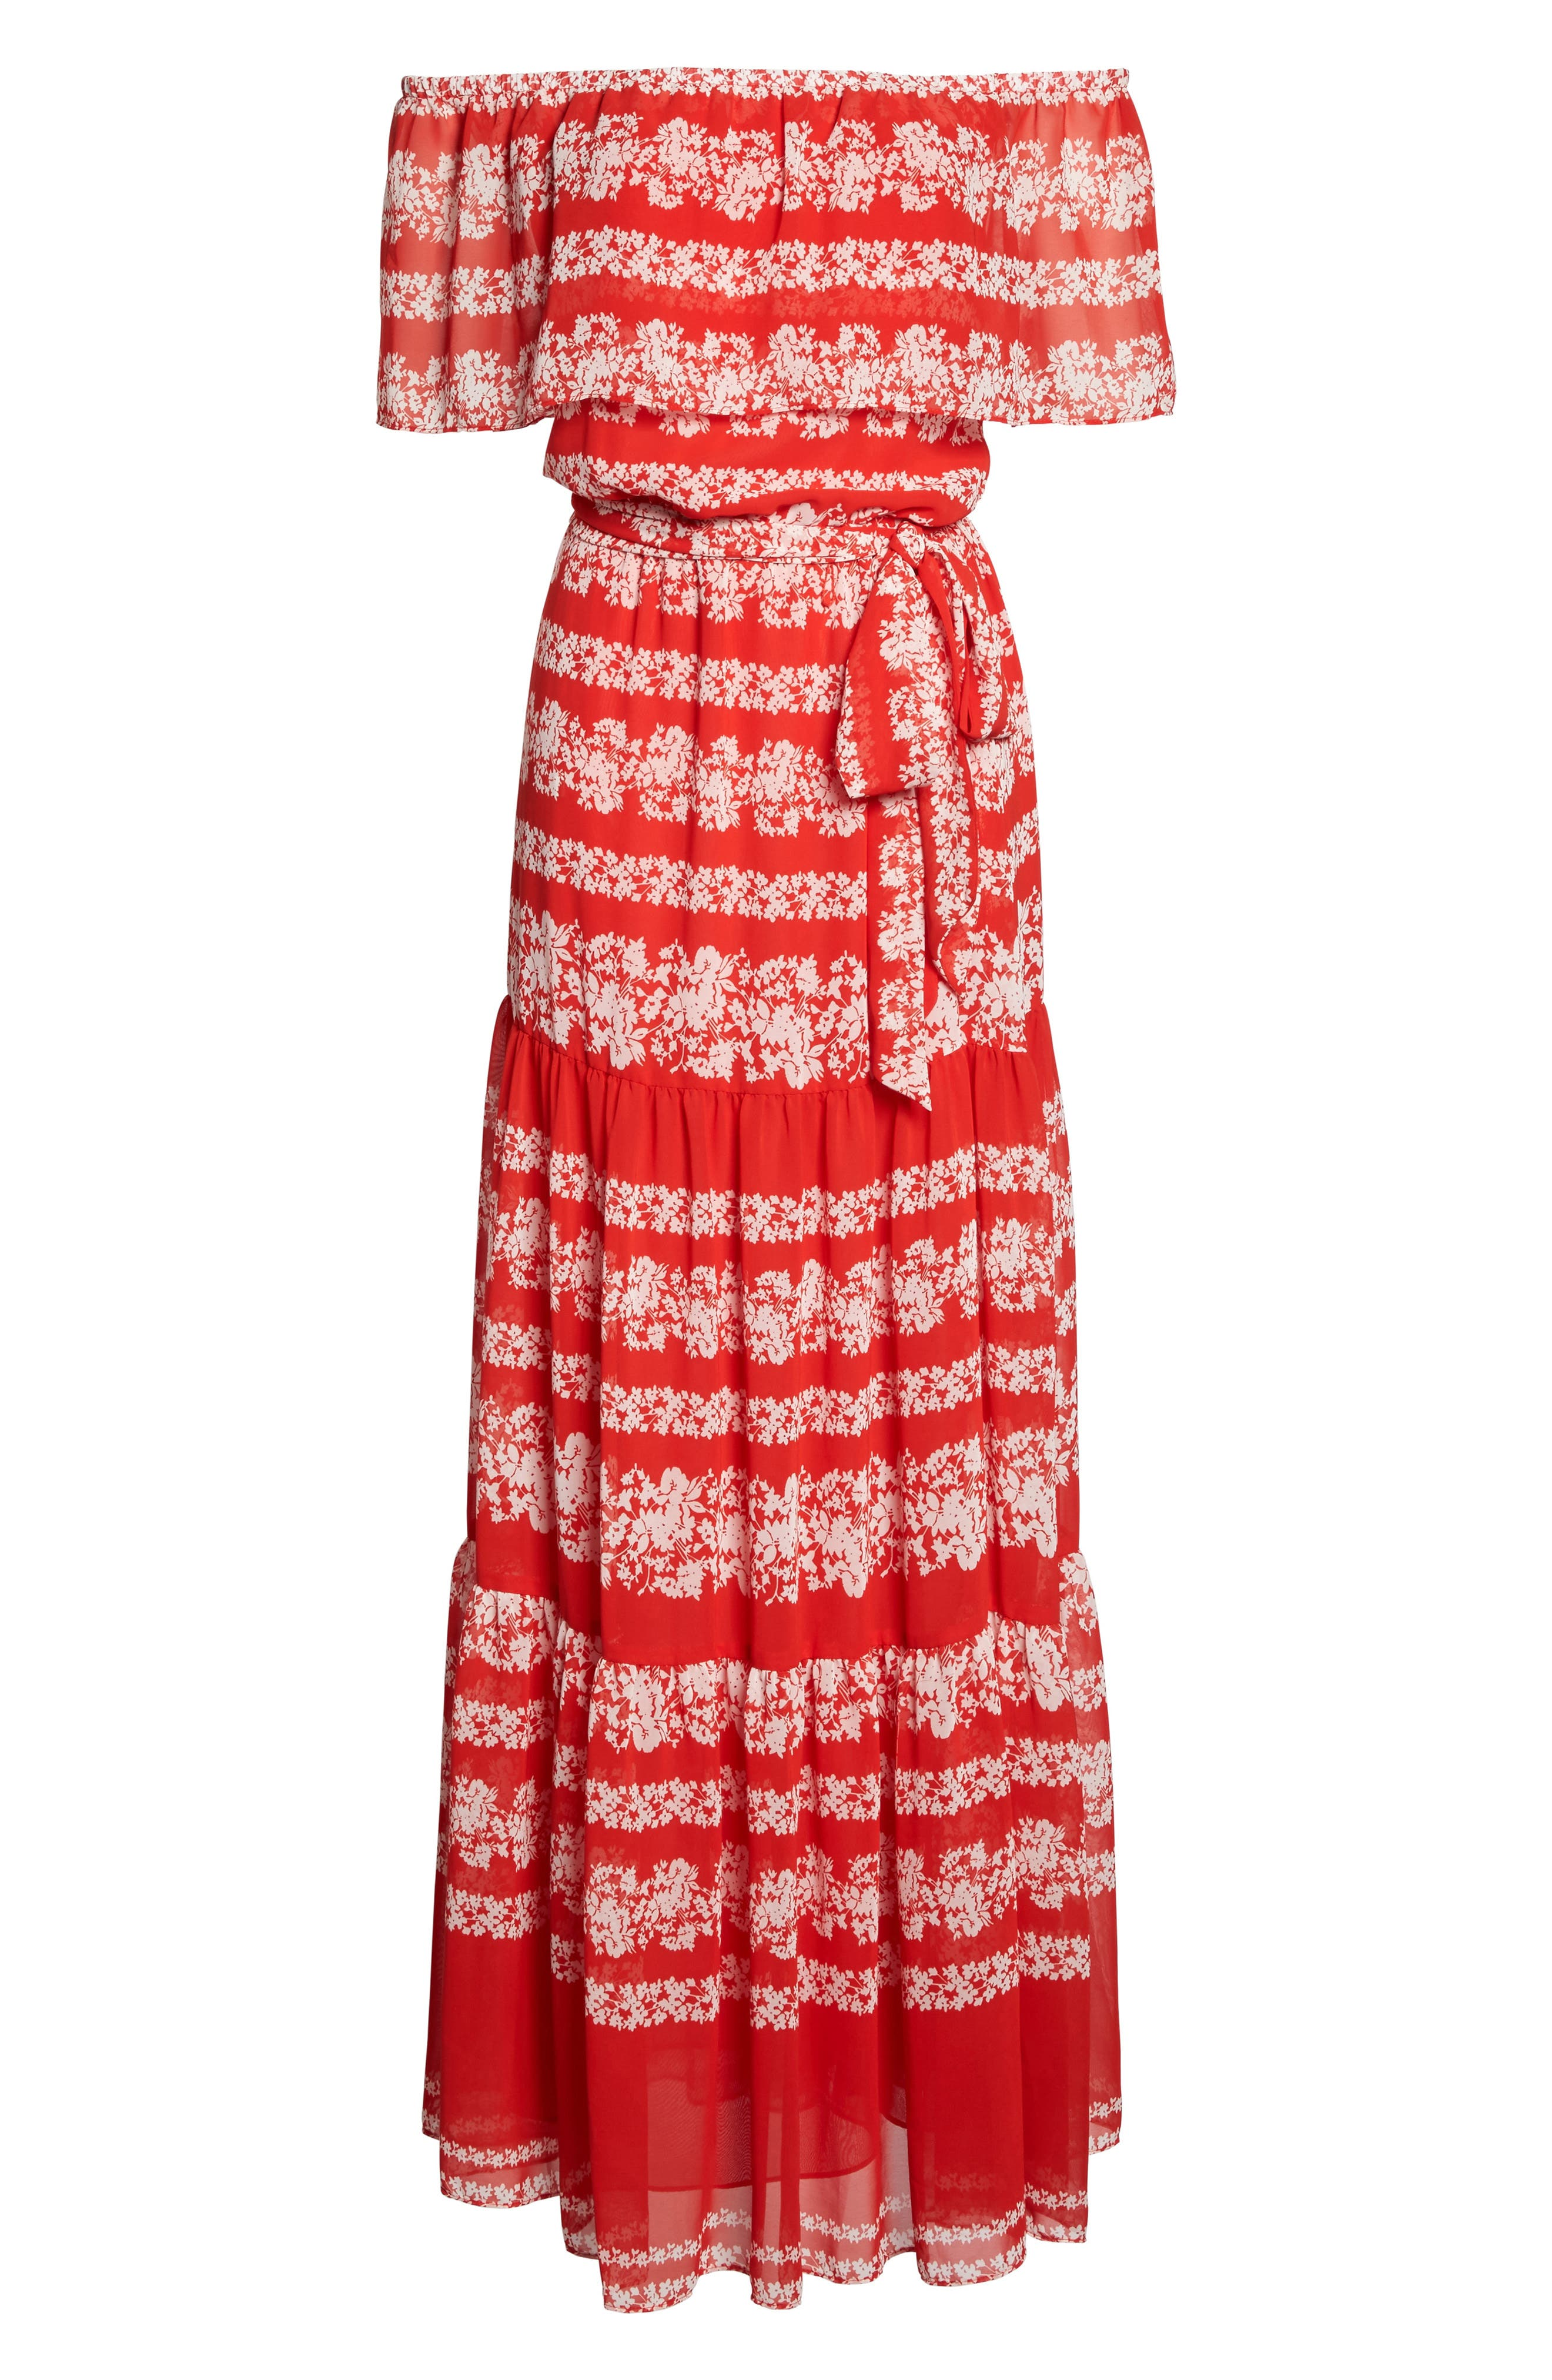 Off the Shoulder Maxi Dress,                             Alternate thumbnail 6, color,                             Red/ Ivory